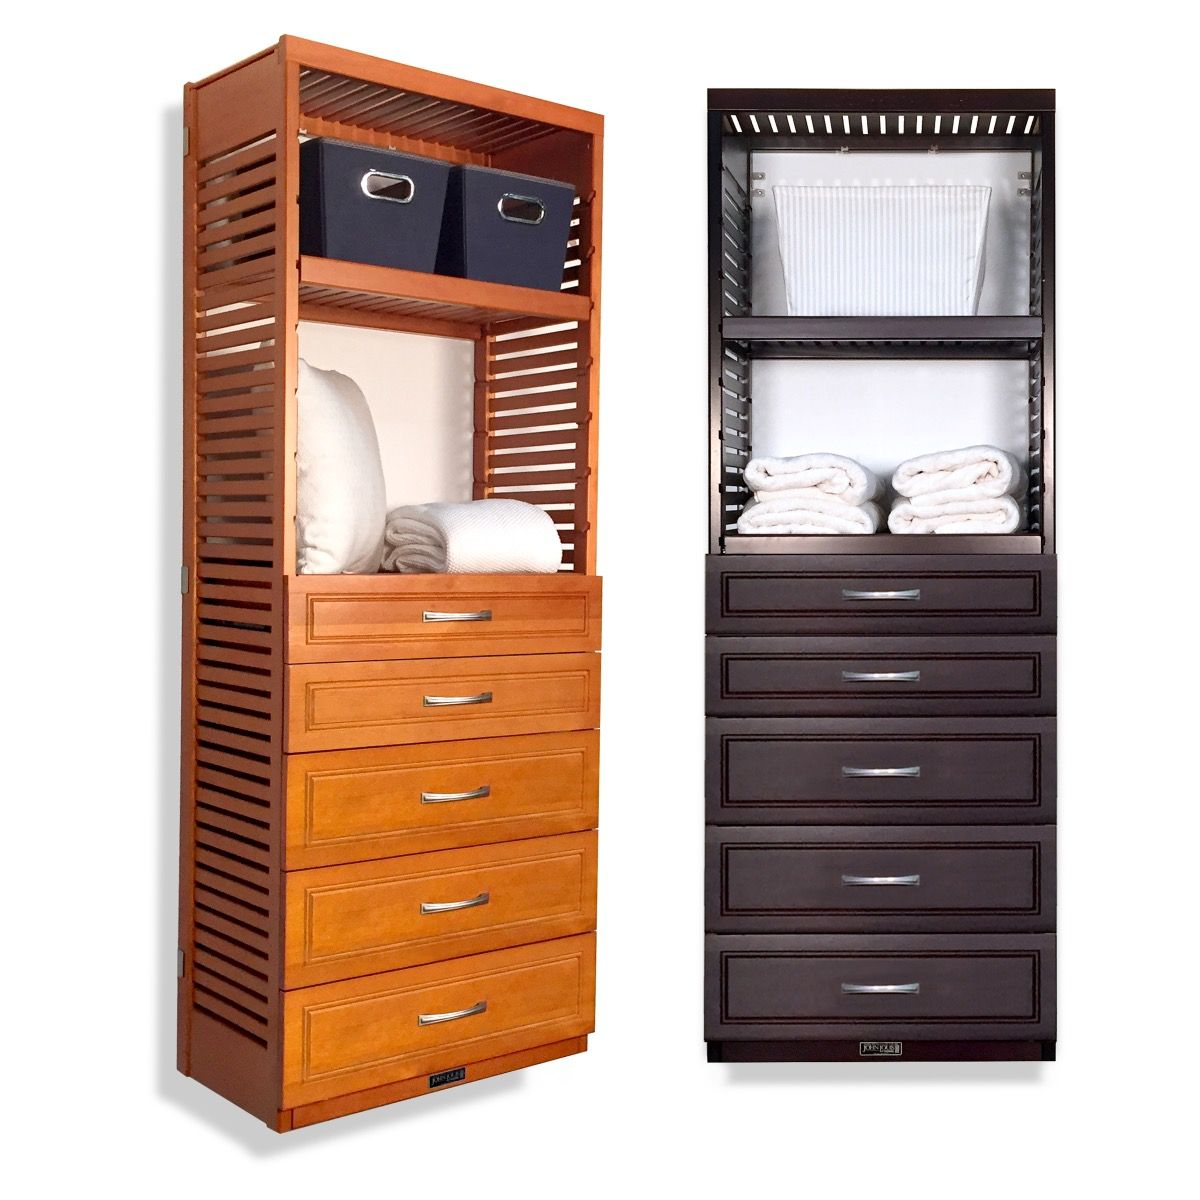 Closet Organizer Kit 16in Deep Woodcrest 6ft Tower With Drawers John Louis Home